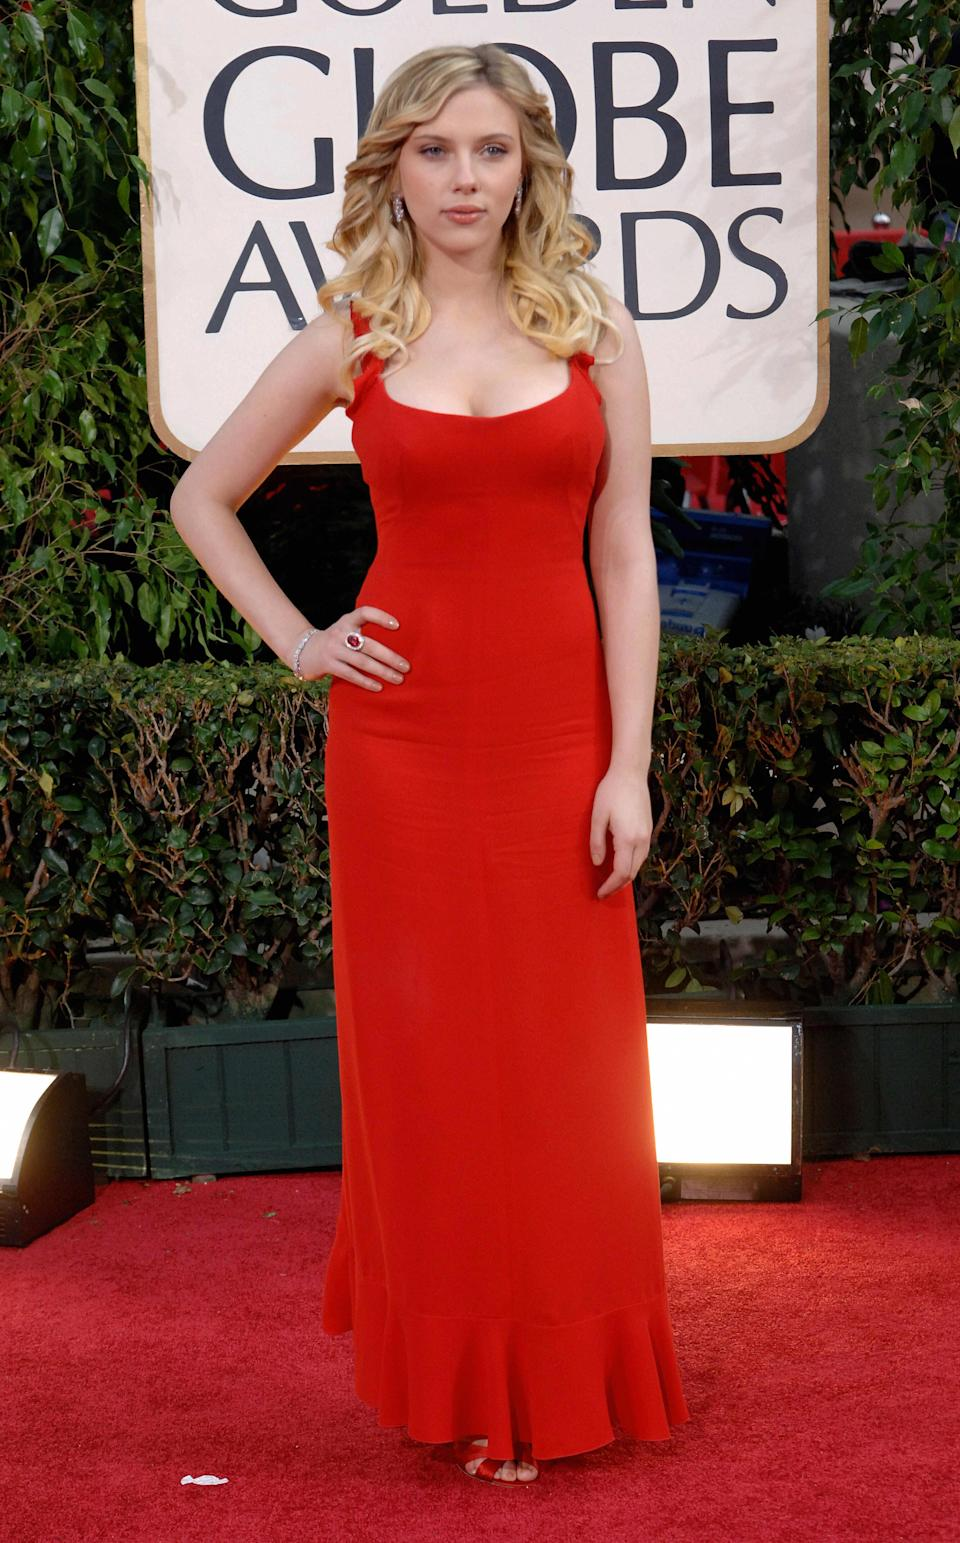 <p>Scarlett Johansson would look gorgeous in just about anything, but she pulled all the stops in this simple, elegant, scarlet red (pun intended) Valentino gown. (Image via Getty Images)</p>